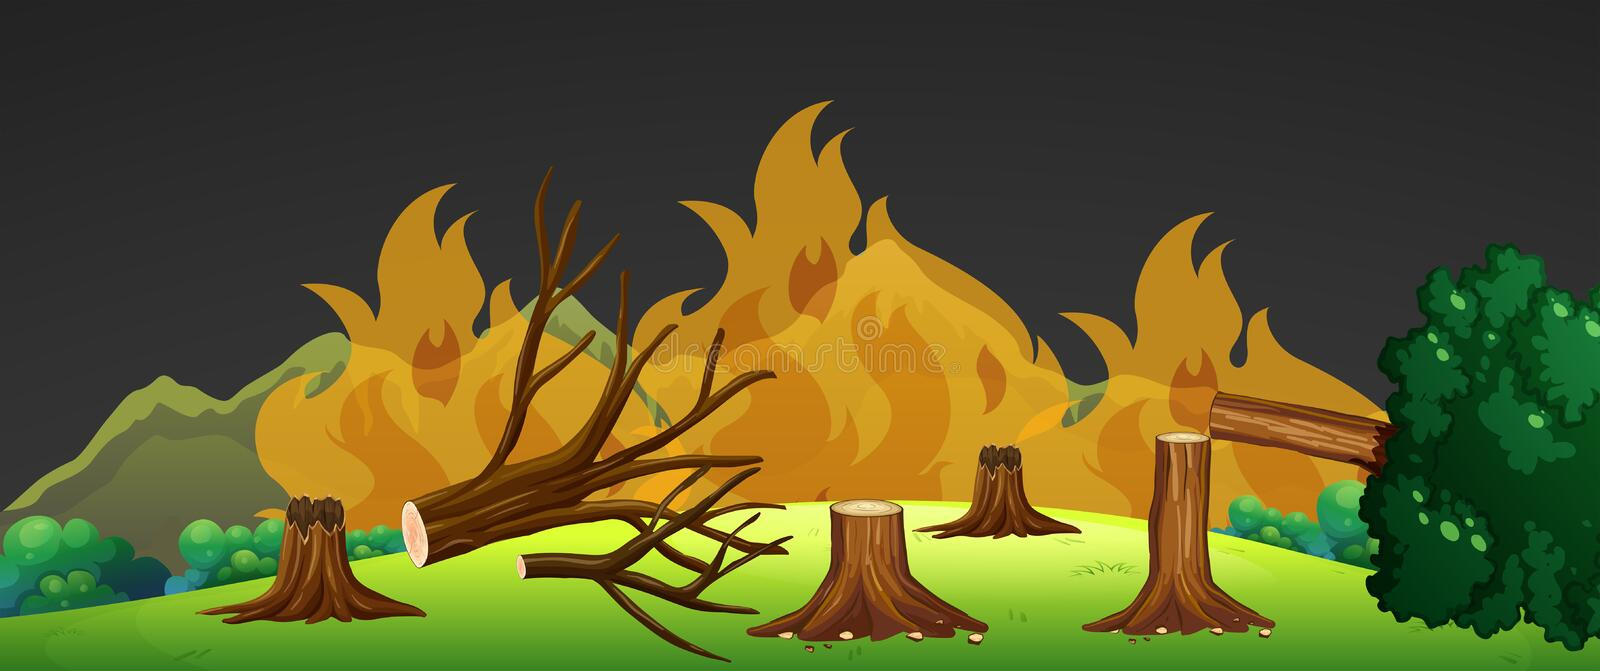 Wild fire in forest at night stock illustration